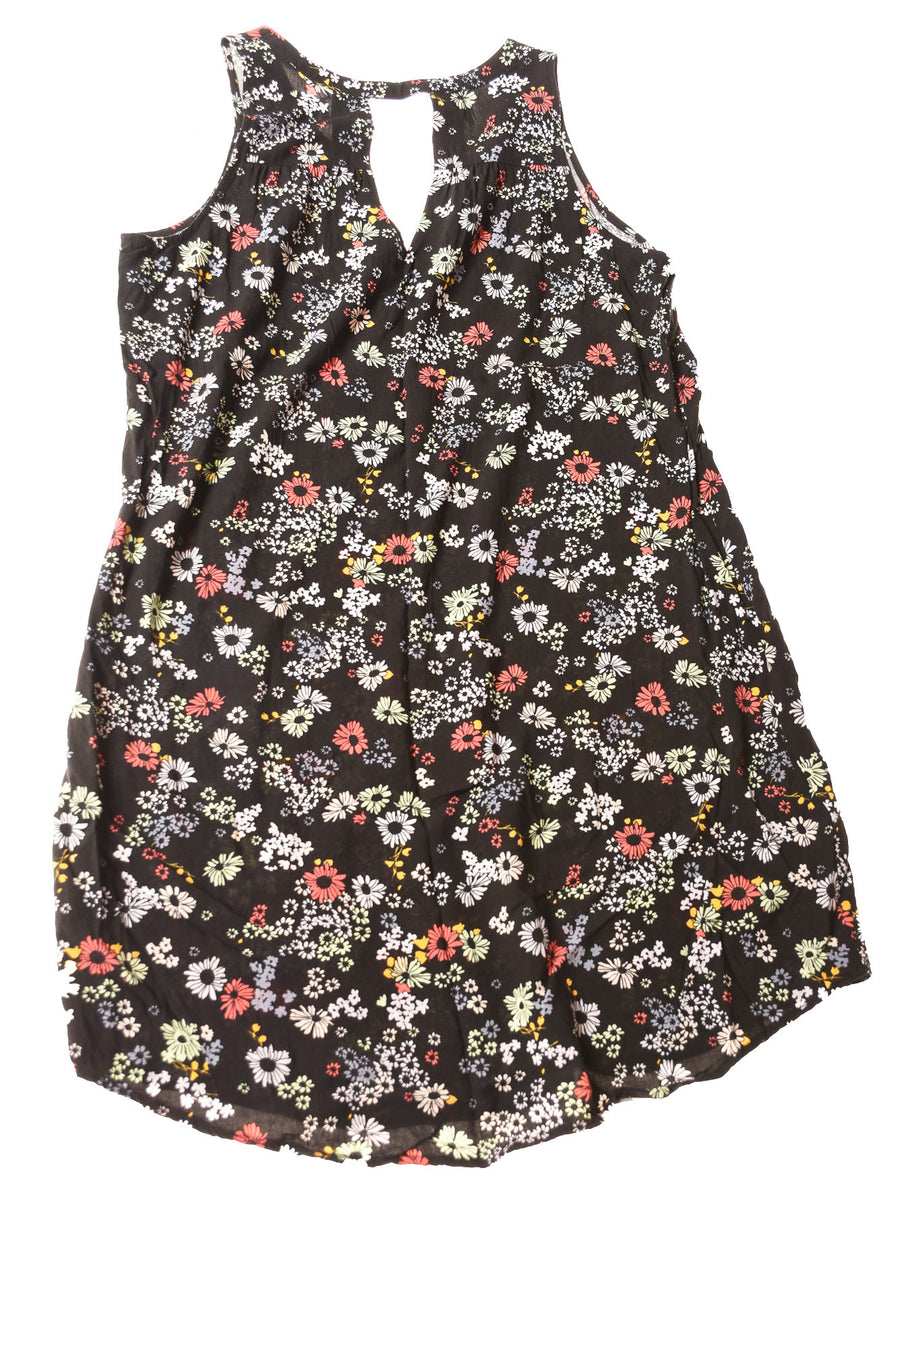 USED Old Navy Women's Dress Medium Black / Floral